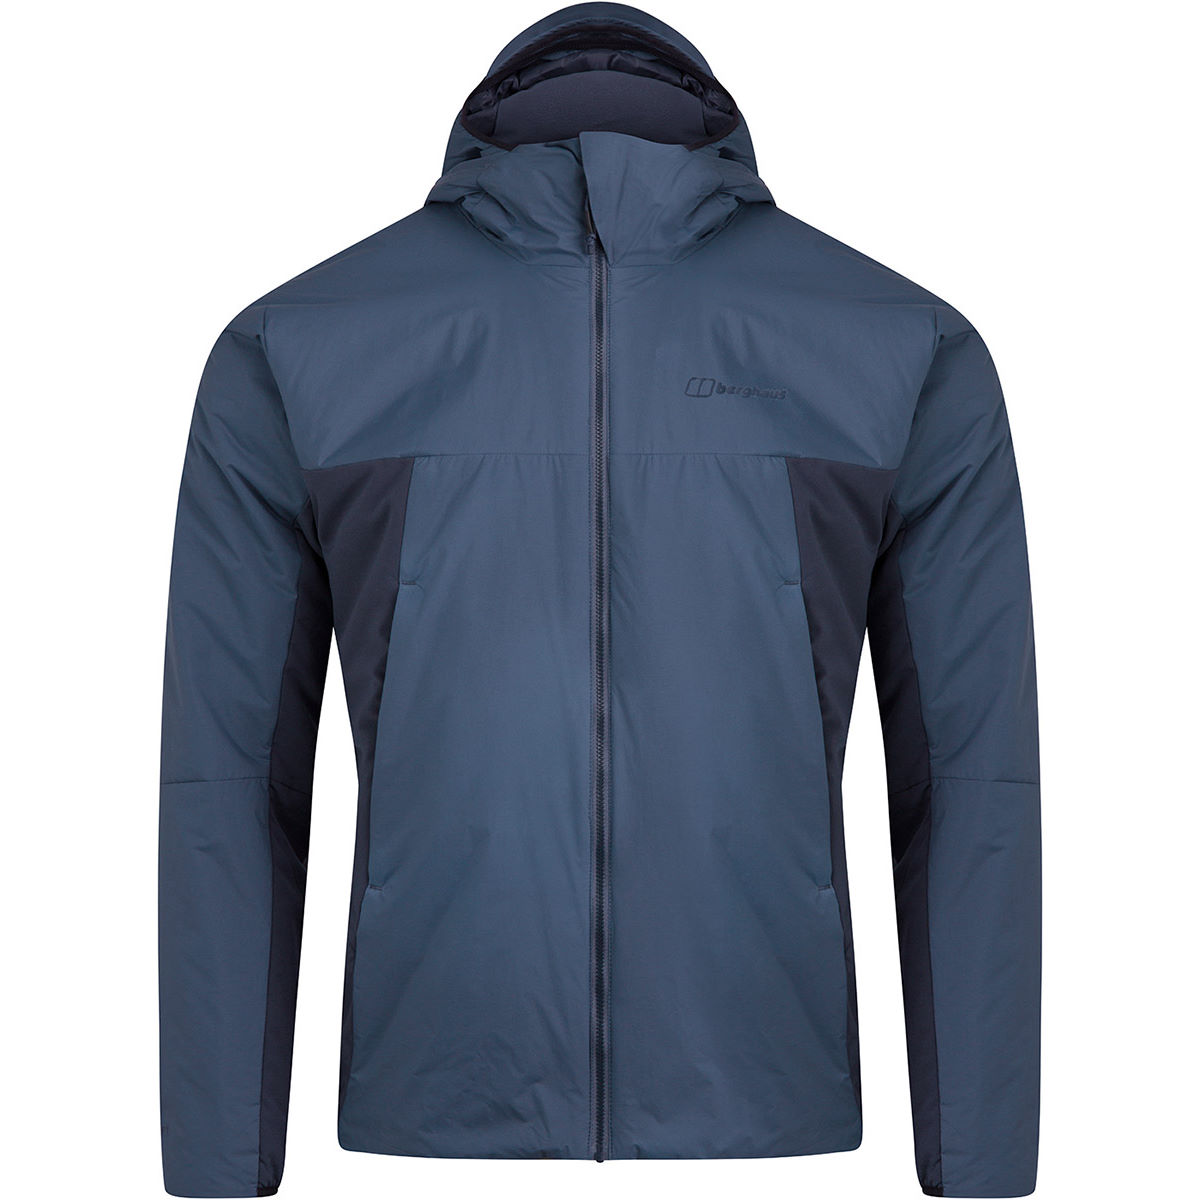 Berghaus Berghaus Tangra Insulated Jacket   Jackets